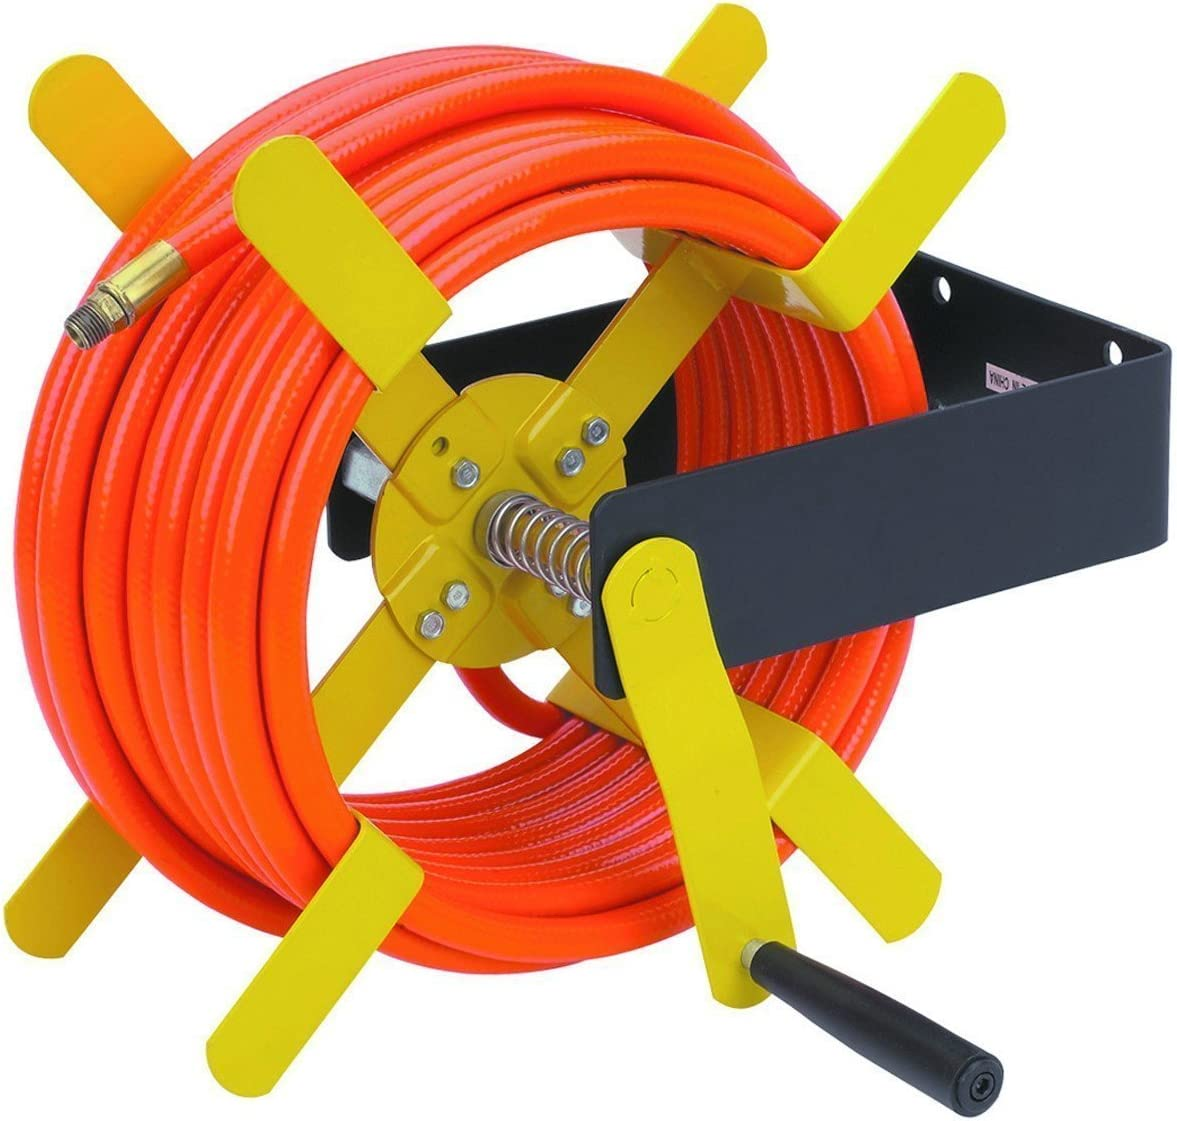 100 Ft Open Side Steel Air Hose Reel By Harbor Freight Tools Amazon Co Uk Diy Tools